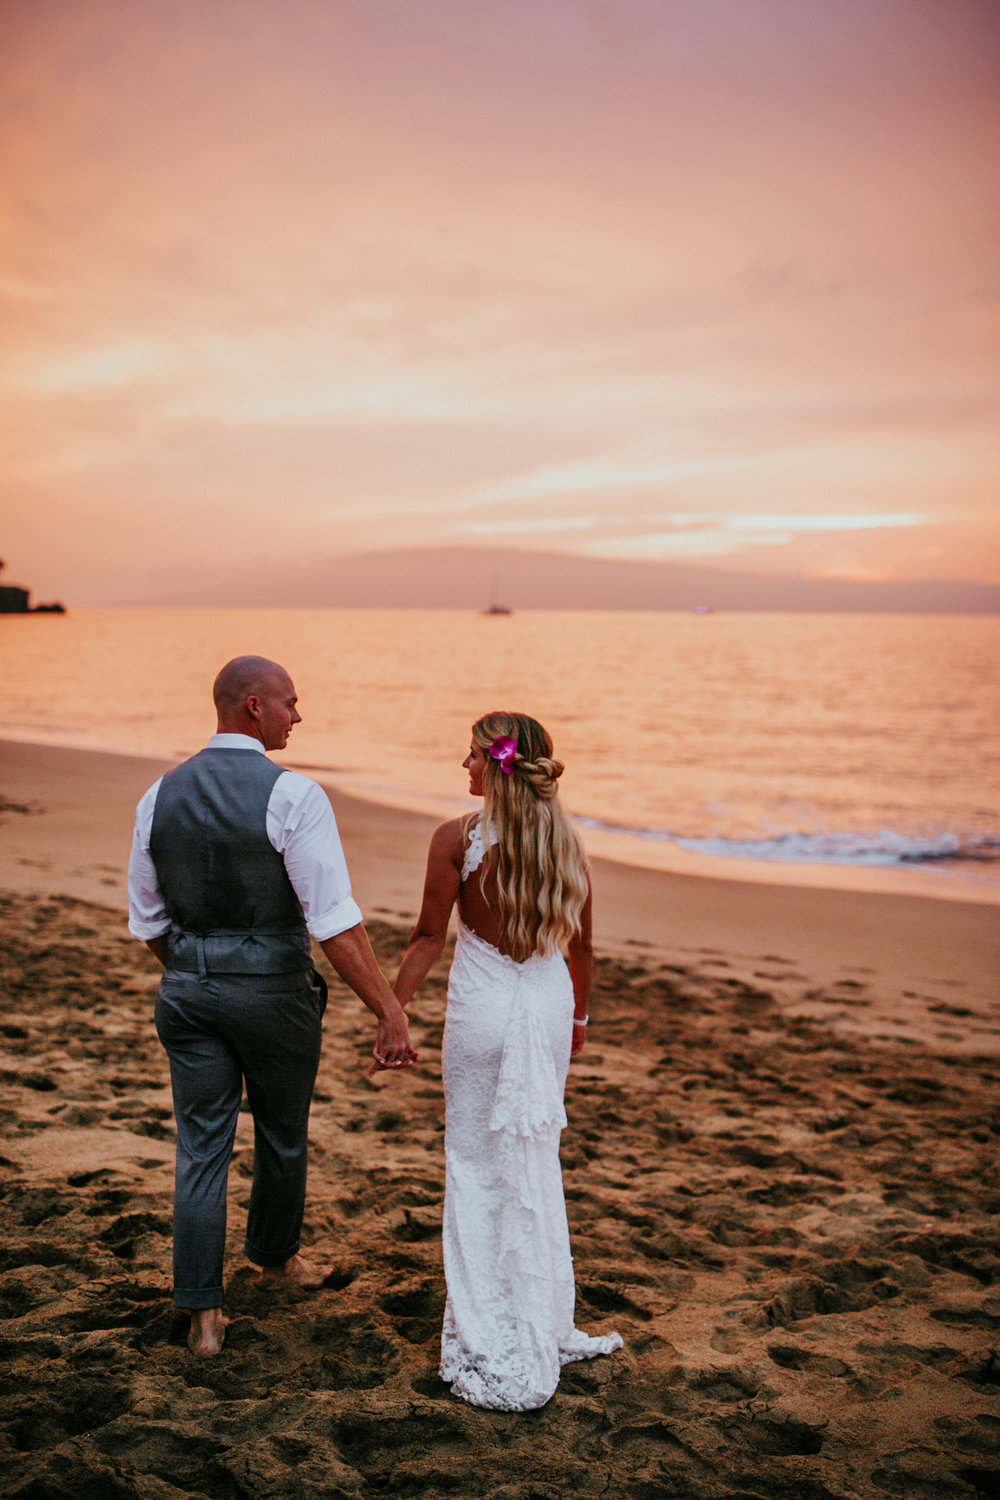 destination-wedding-photographer-hawaii-maui-elopement-105.jpg